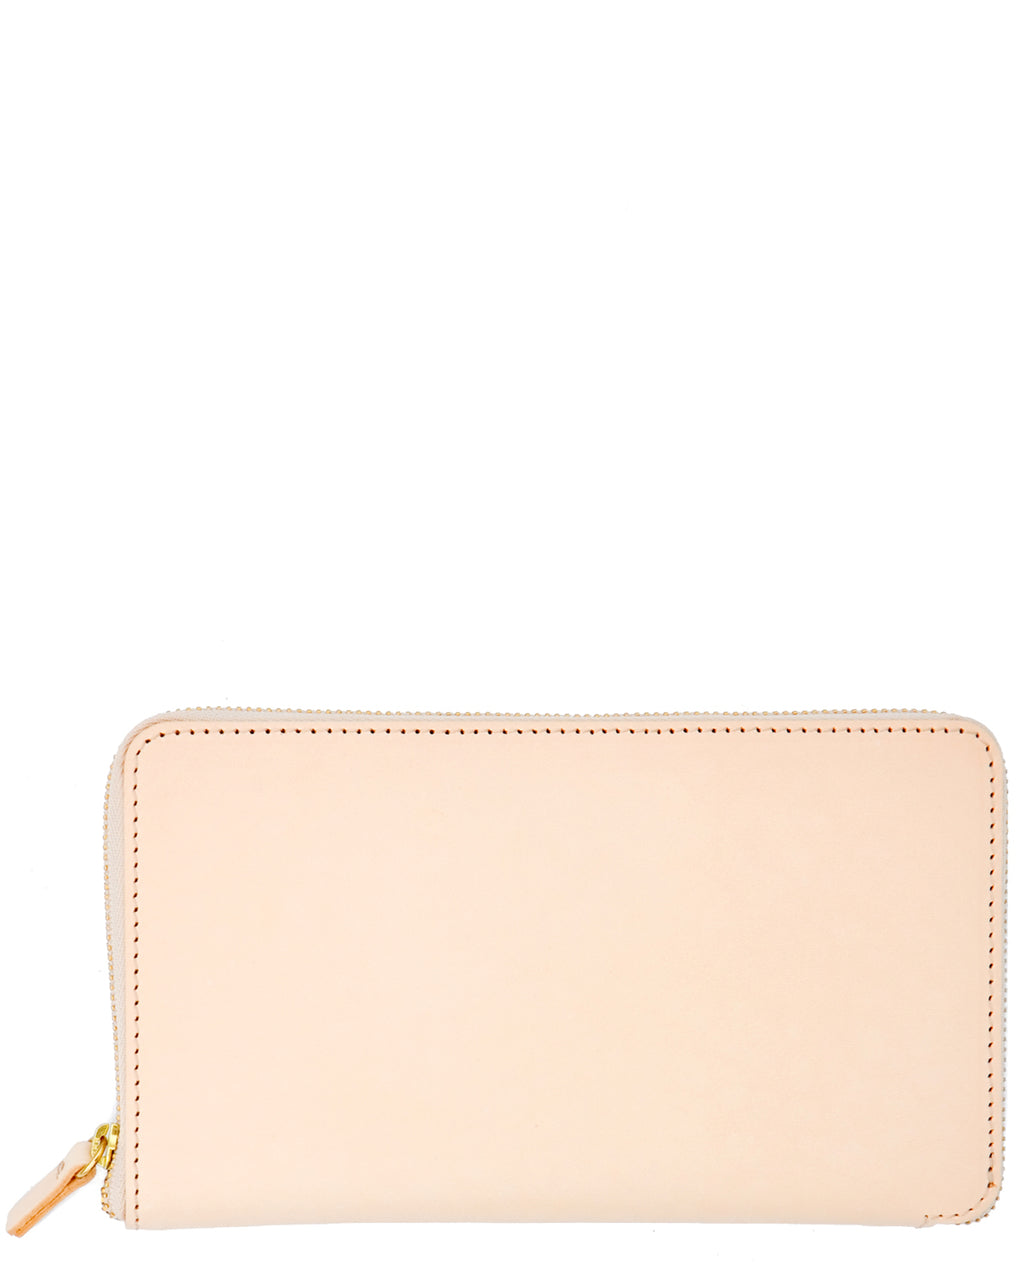 Tall [$114.99] / Natural: Coupe Zip Wallet in Tall [$114.99] / Natural - LEIF